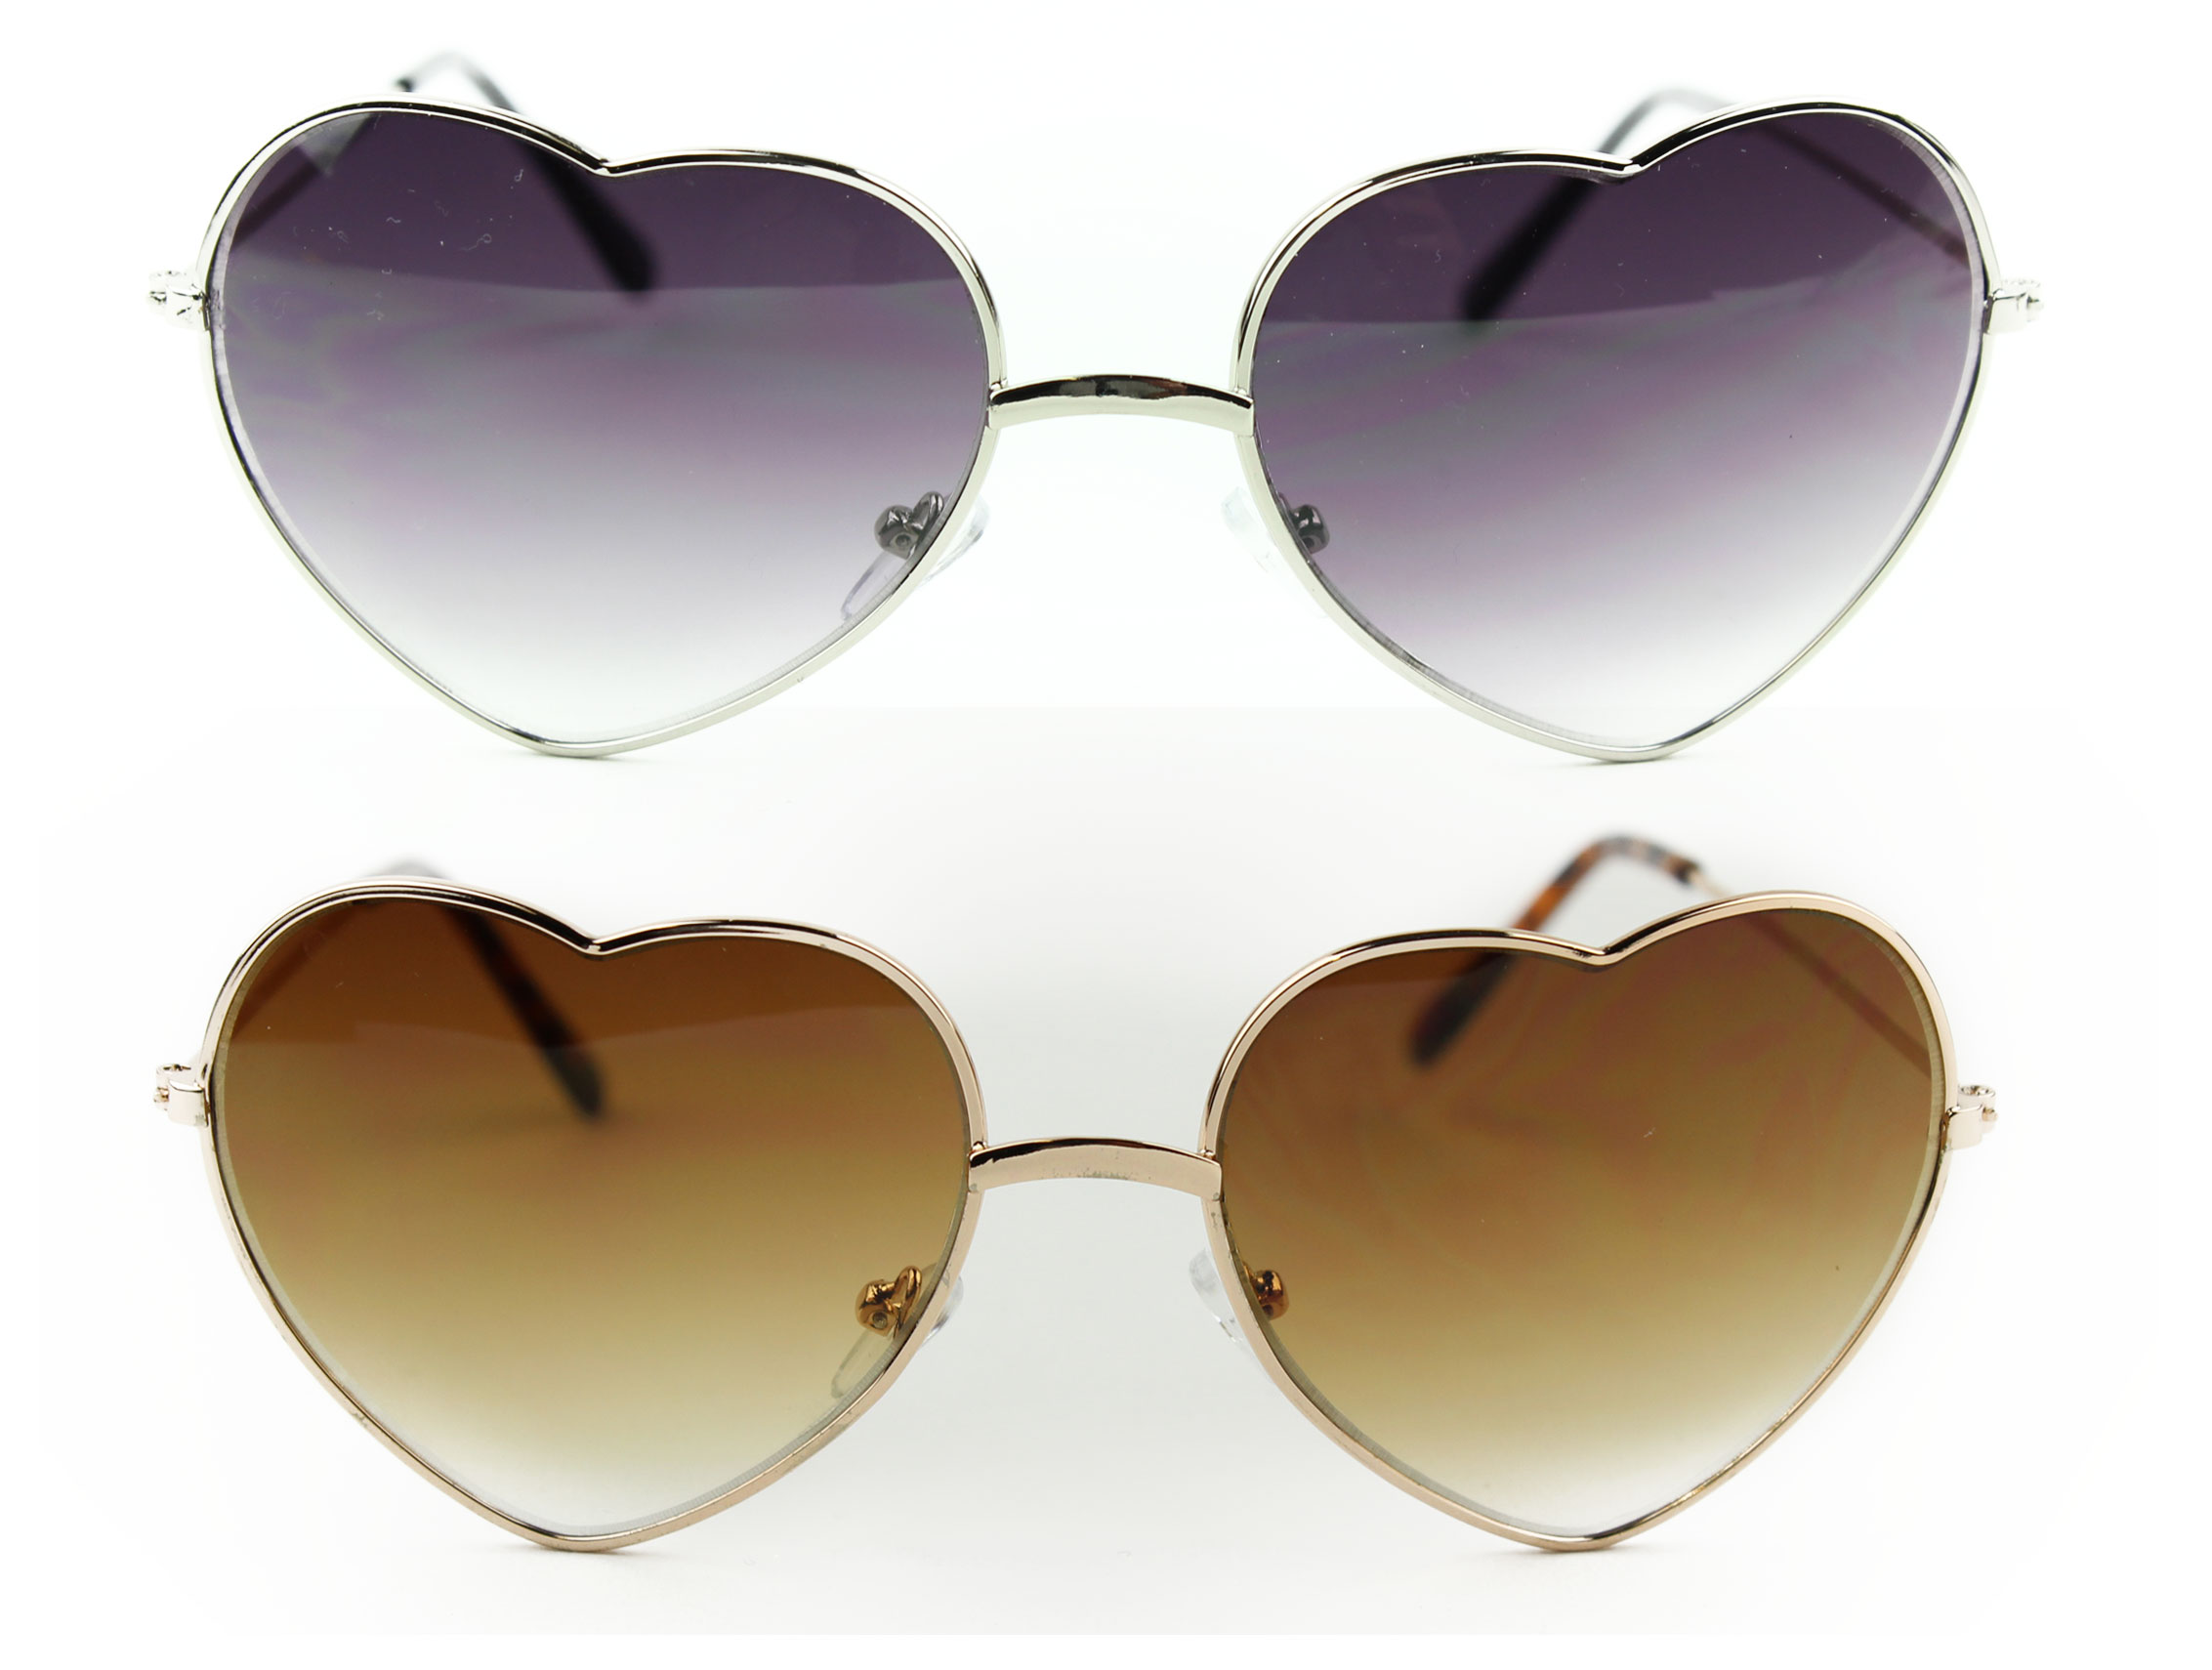 Fashion Heart Shaped Sunglasses Metal Frame Sunglasses Shades Gold and Silver | eBay